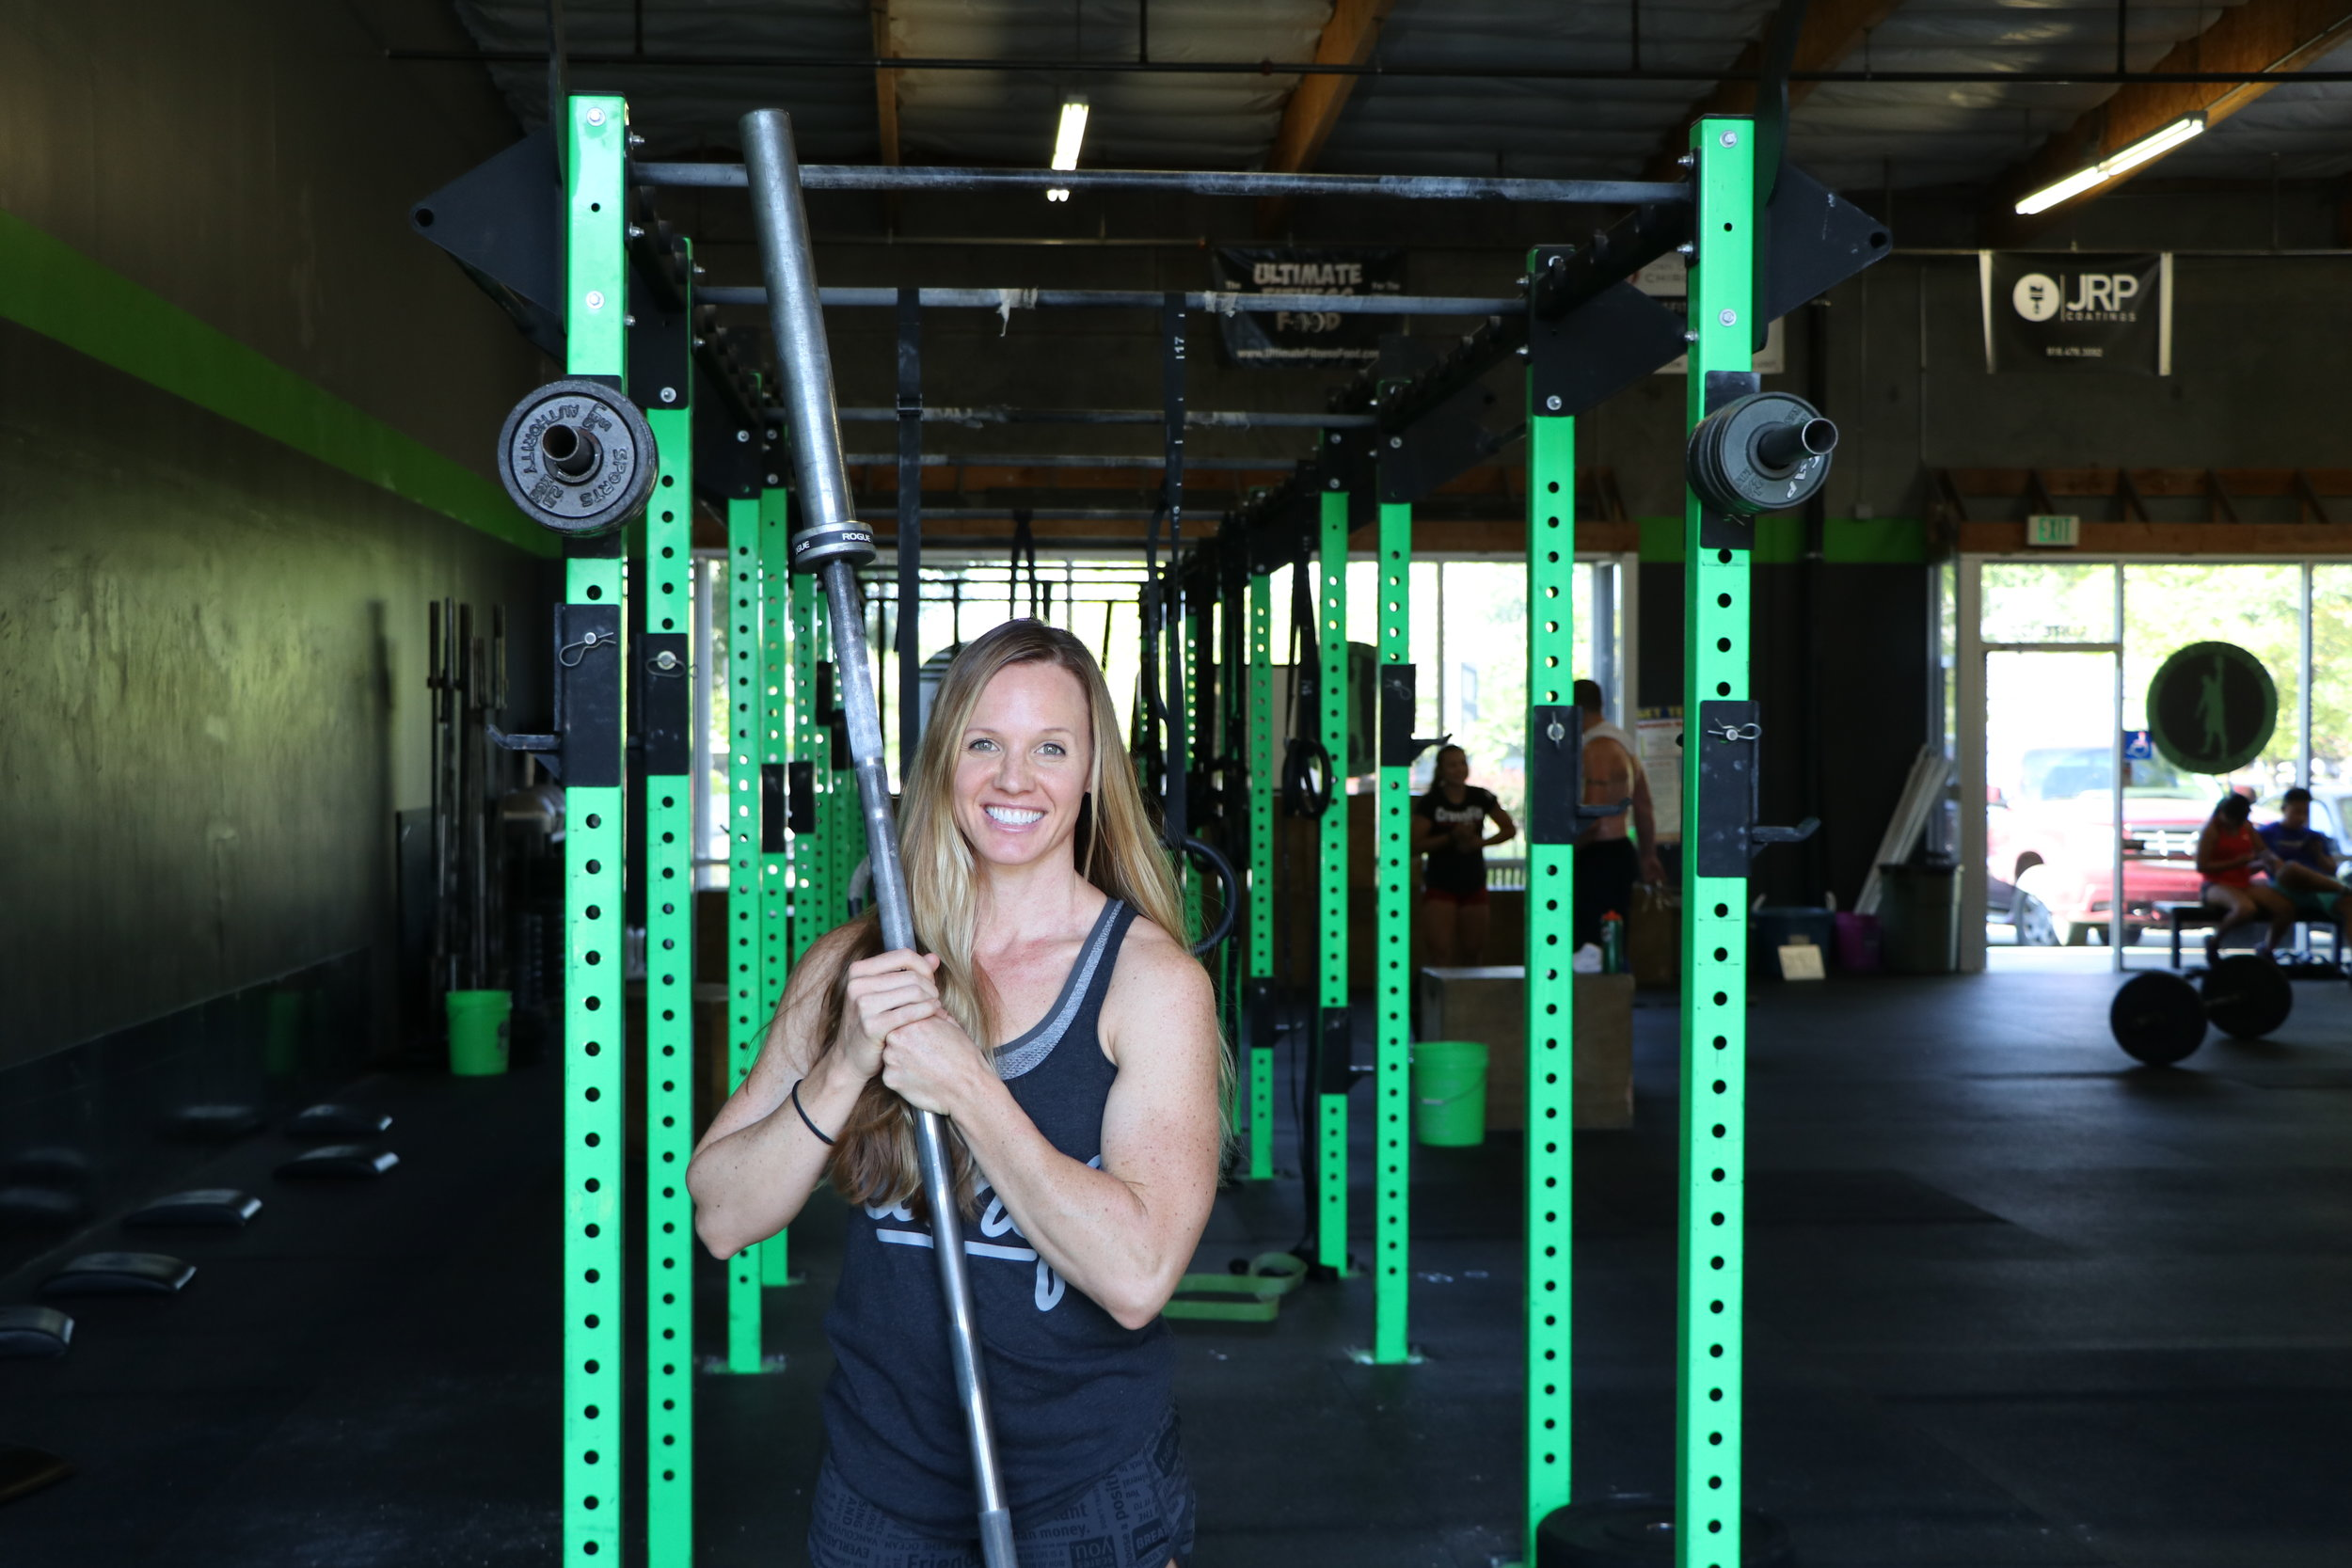 "STACIA RAGAN Coach   Stacia's a Coach at El Dorado Hills CrossFit and a former competitive gymnast and swimmer. ""I was in my third season of triathlon training when I started CrossFit. I enjoyed it so much that I left triathlons and began focusing on CrossFit full-time. It allowed me to utilize my gymnastics skills on a daily basis.""  ""As a coach, I'm passionate about teaching people how to move safely. I'm also dedicated to introducing skills they can use in their everyday lives. I believe the principles of CrossFit are applicable both in and outside of the gym.""  CERTIFICATIONS: CrossFit Level 1"